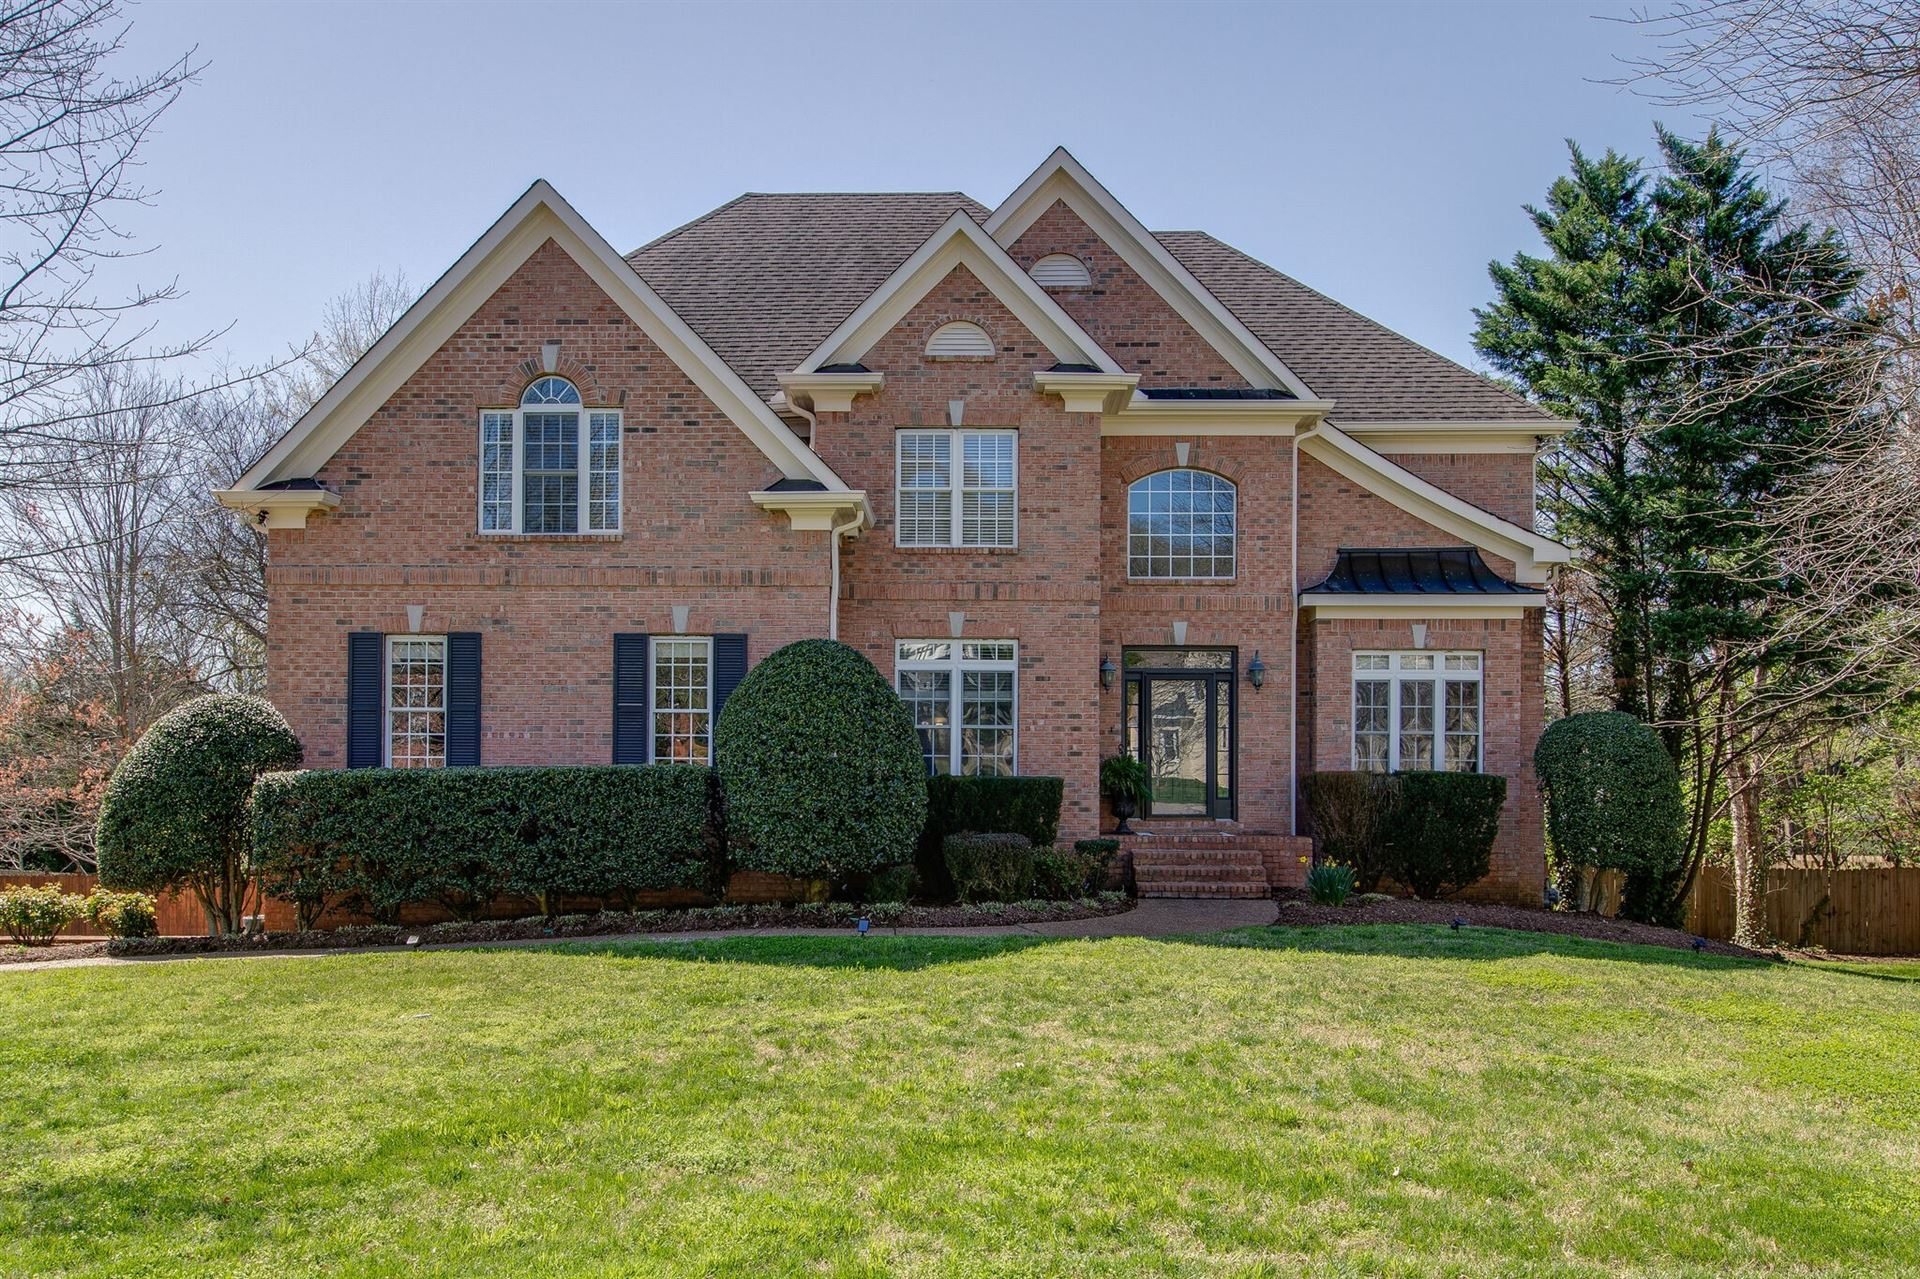 Photo of 241 Poteat Pl, Franklin, TN 37064 (MLS # 2253171)